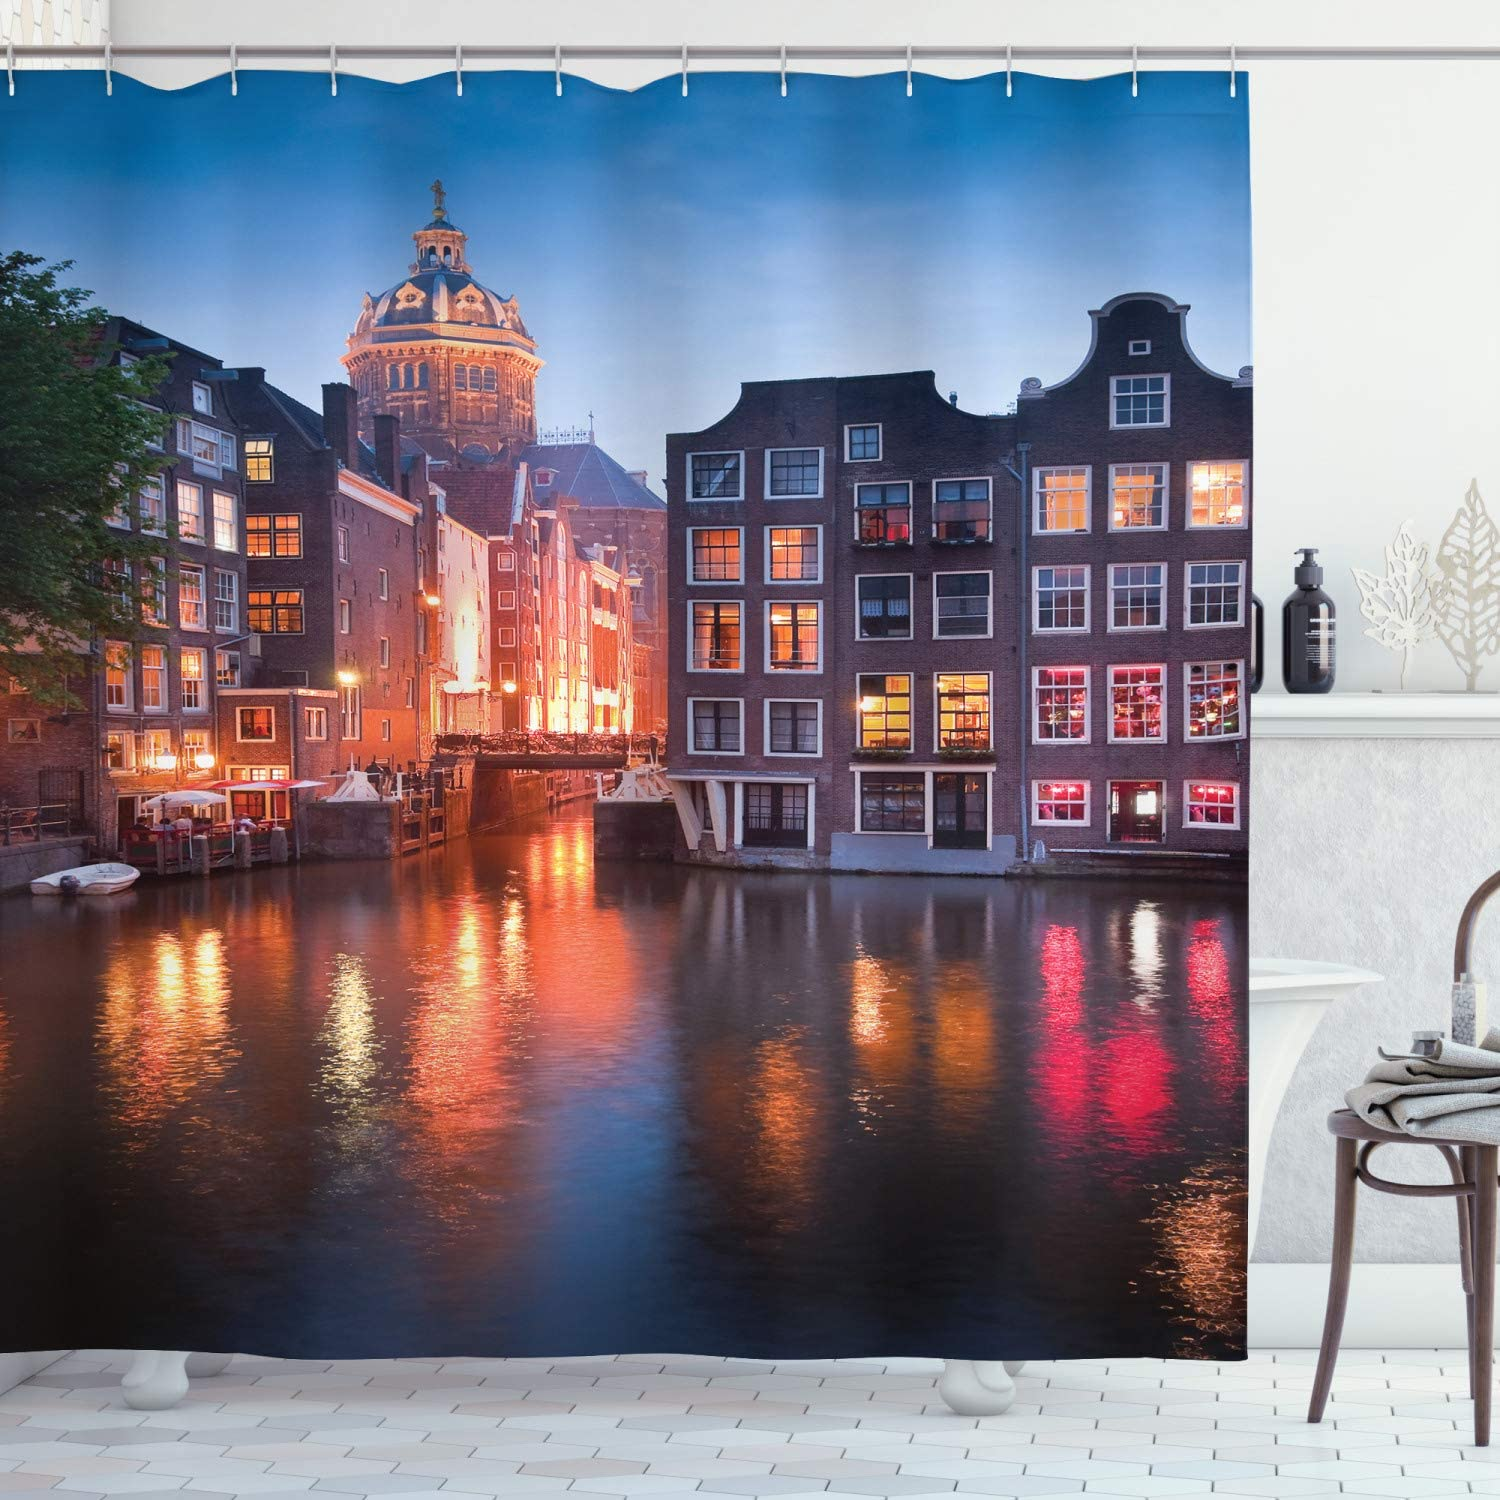 Ambesonne Wanderlust Decor Collection, Night Time Photography of the Neo-Renaissance Building Amsterdam, Polyester Fabric Bathroom Shower Curtain, 75 Inches Long, Orange